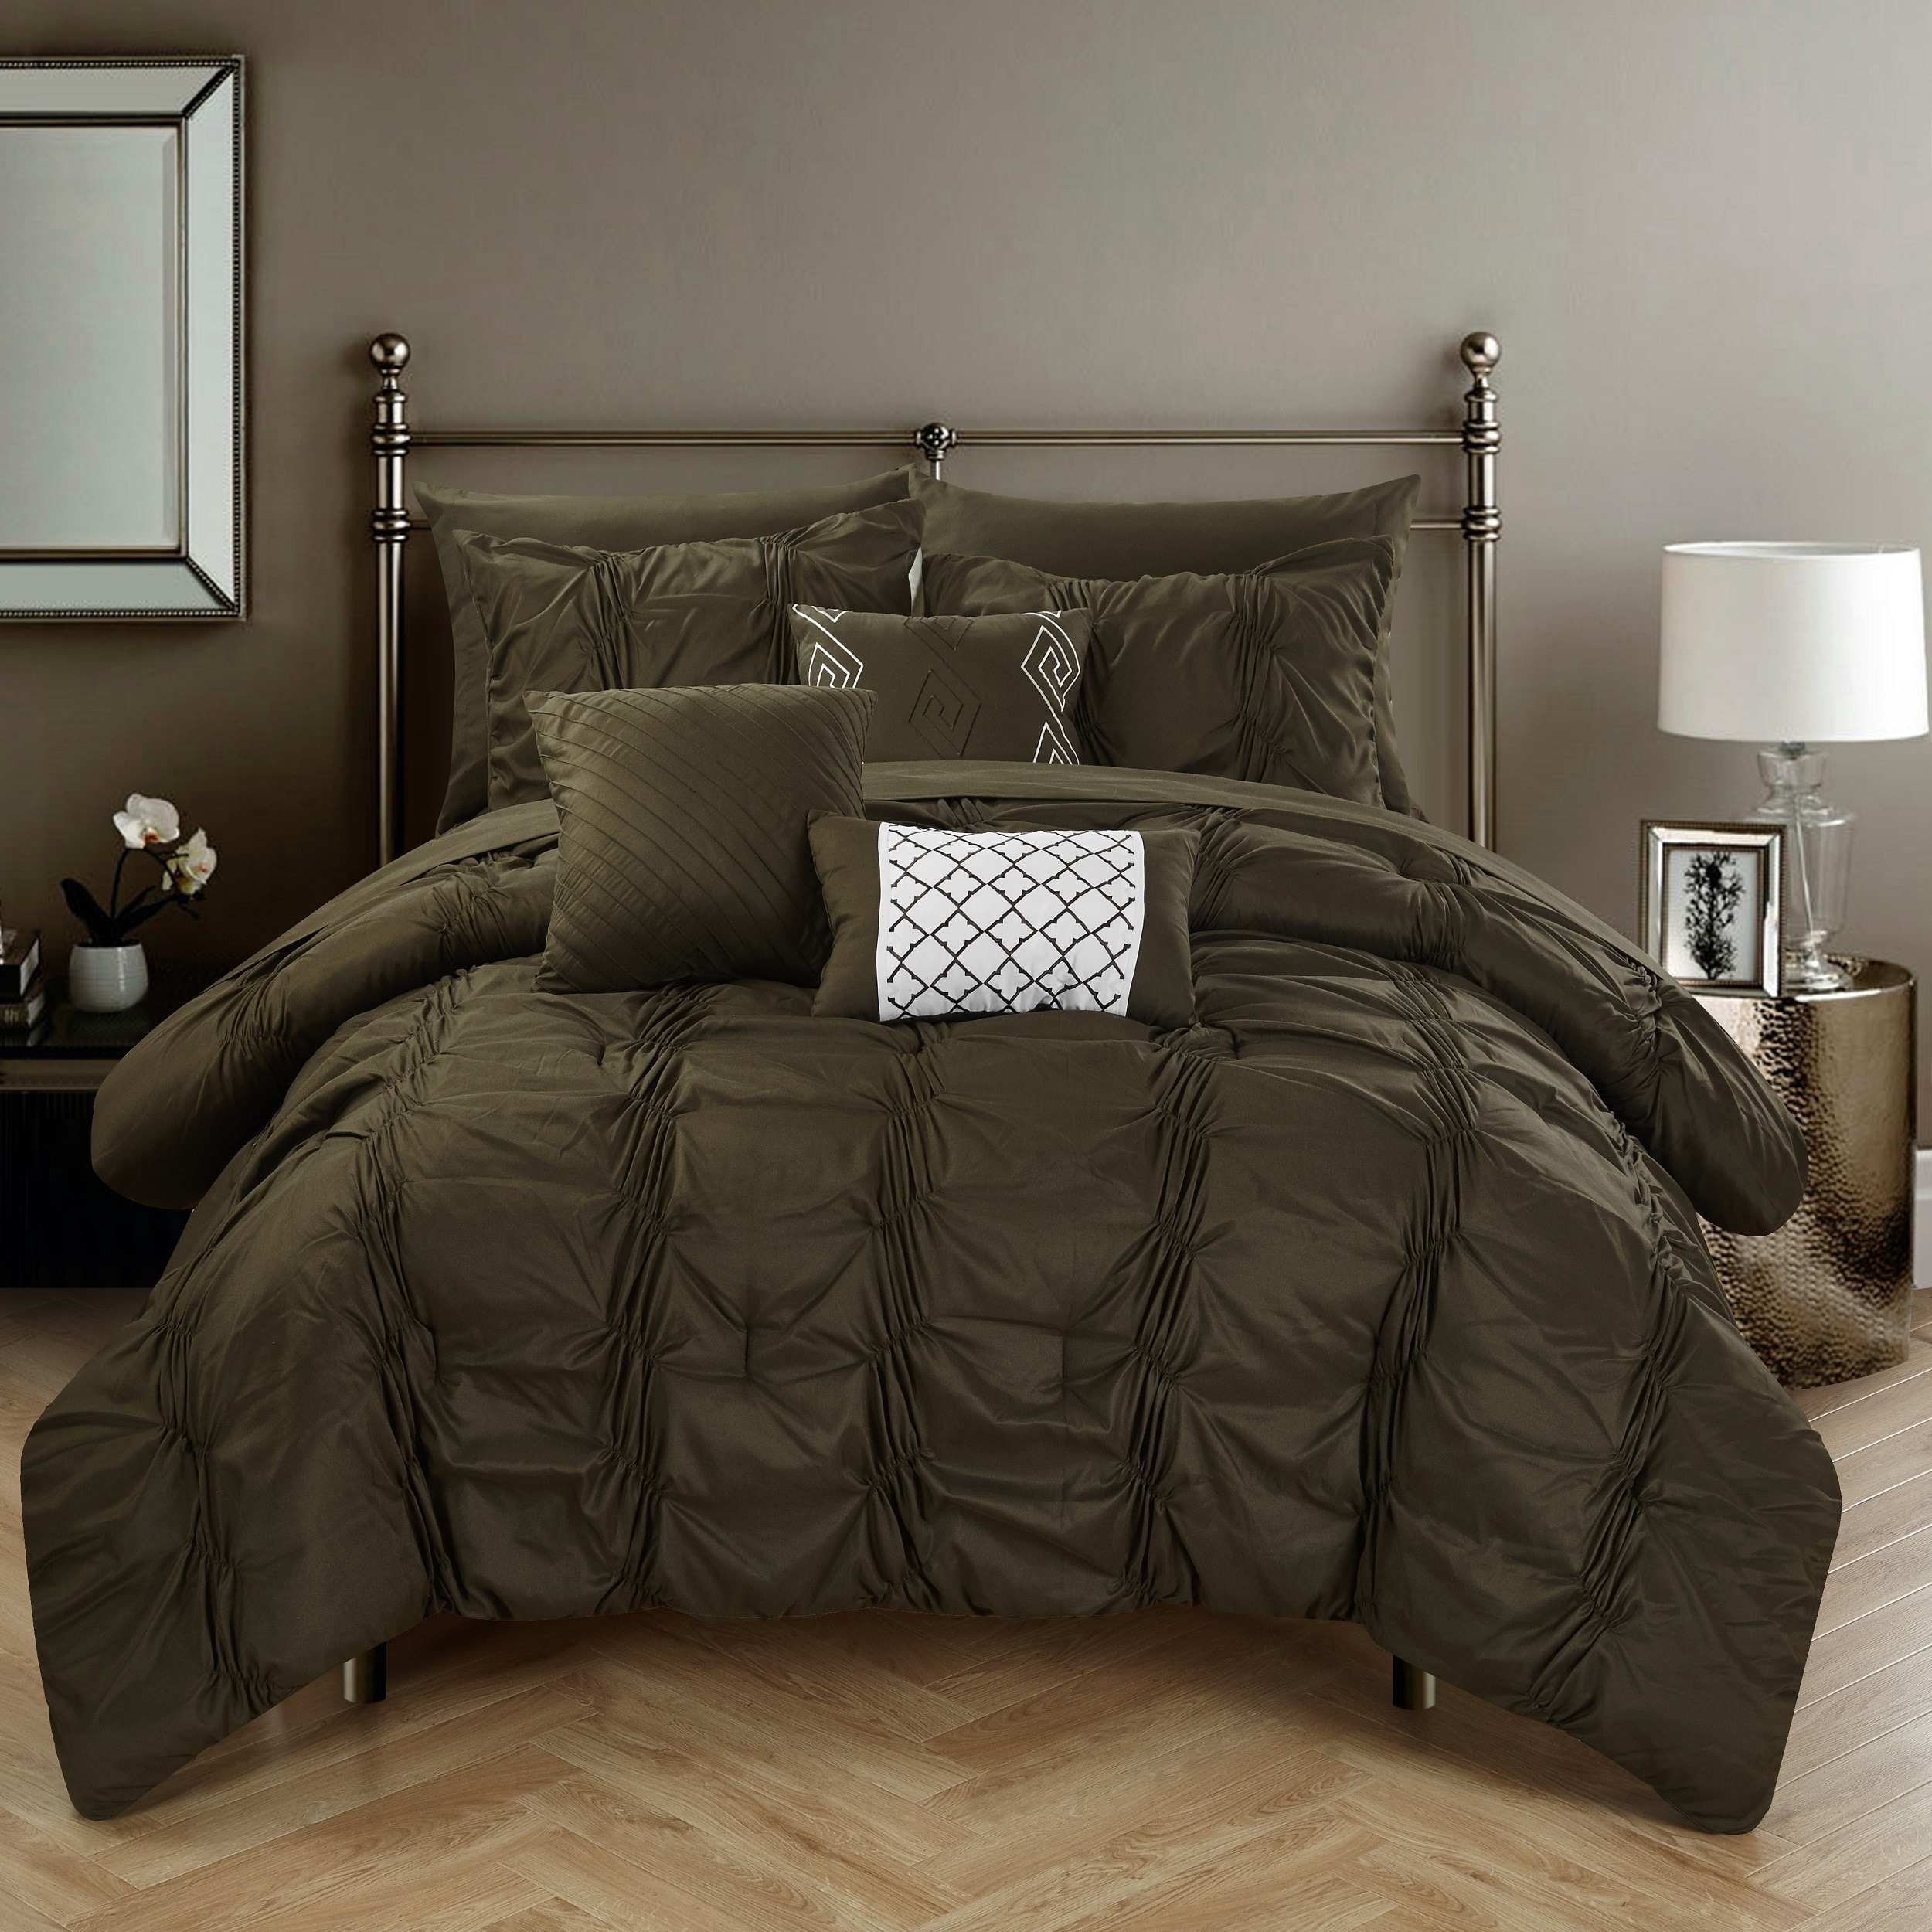 Chic Home Luna Brown Bed In A Bag Comforter 10 Piece Set On Free Shipping Today 12383724